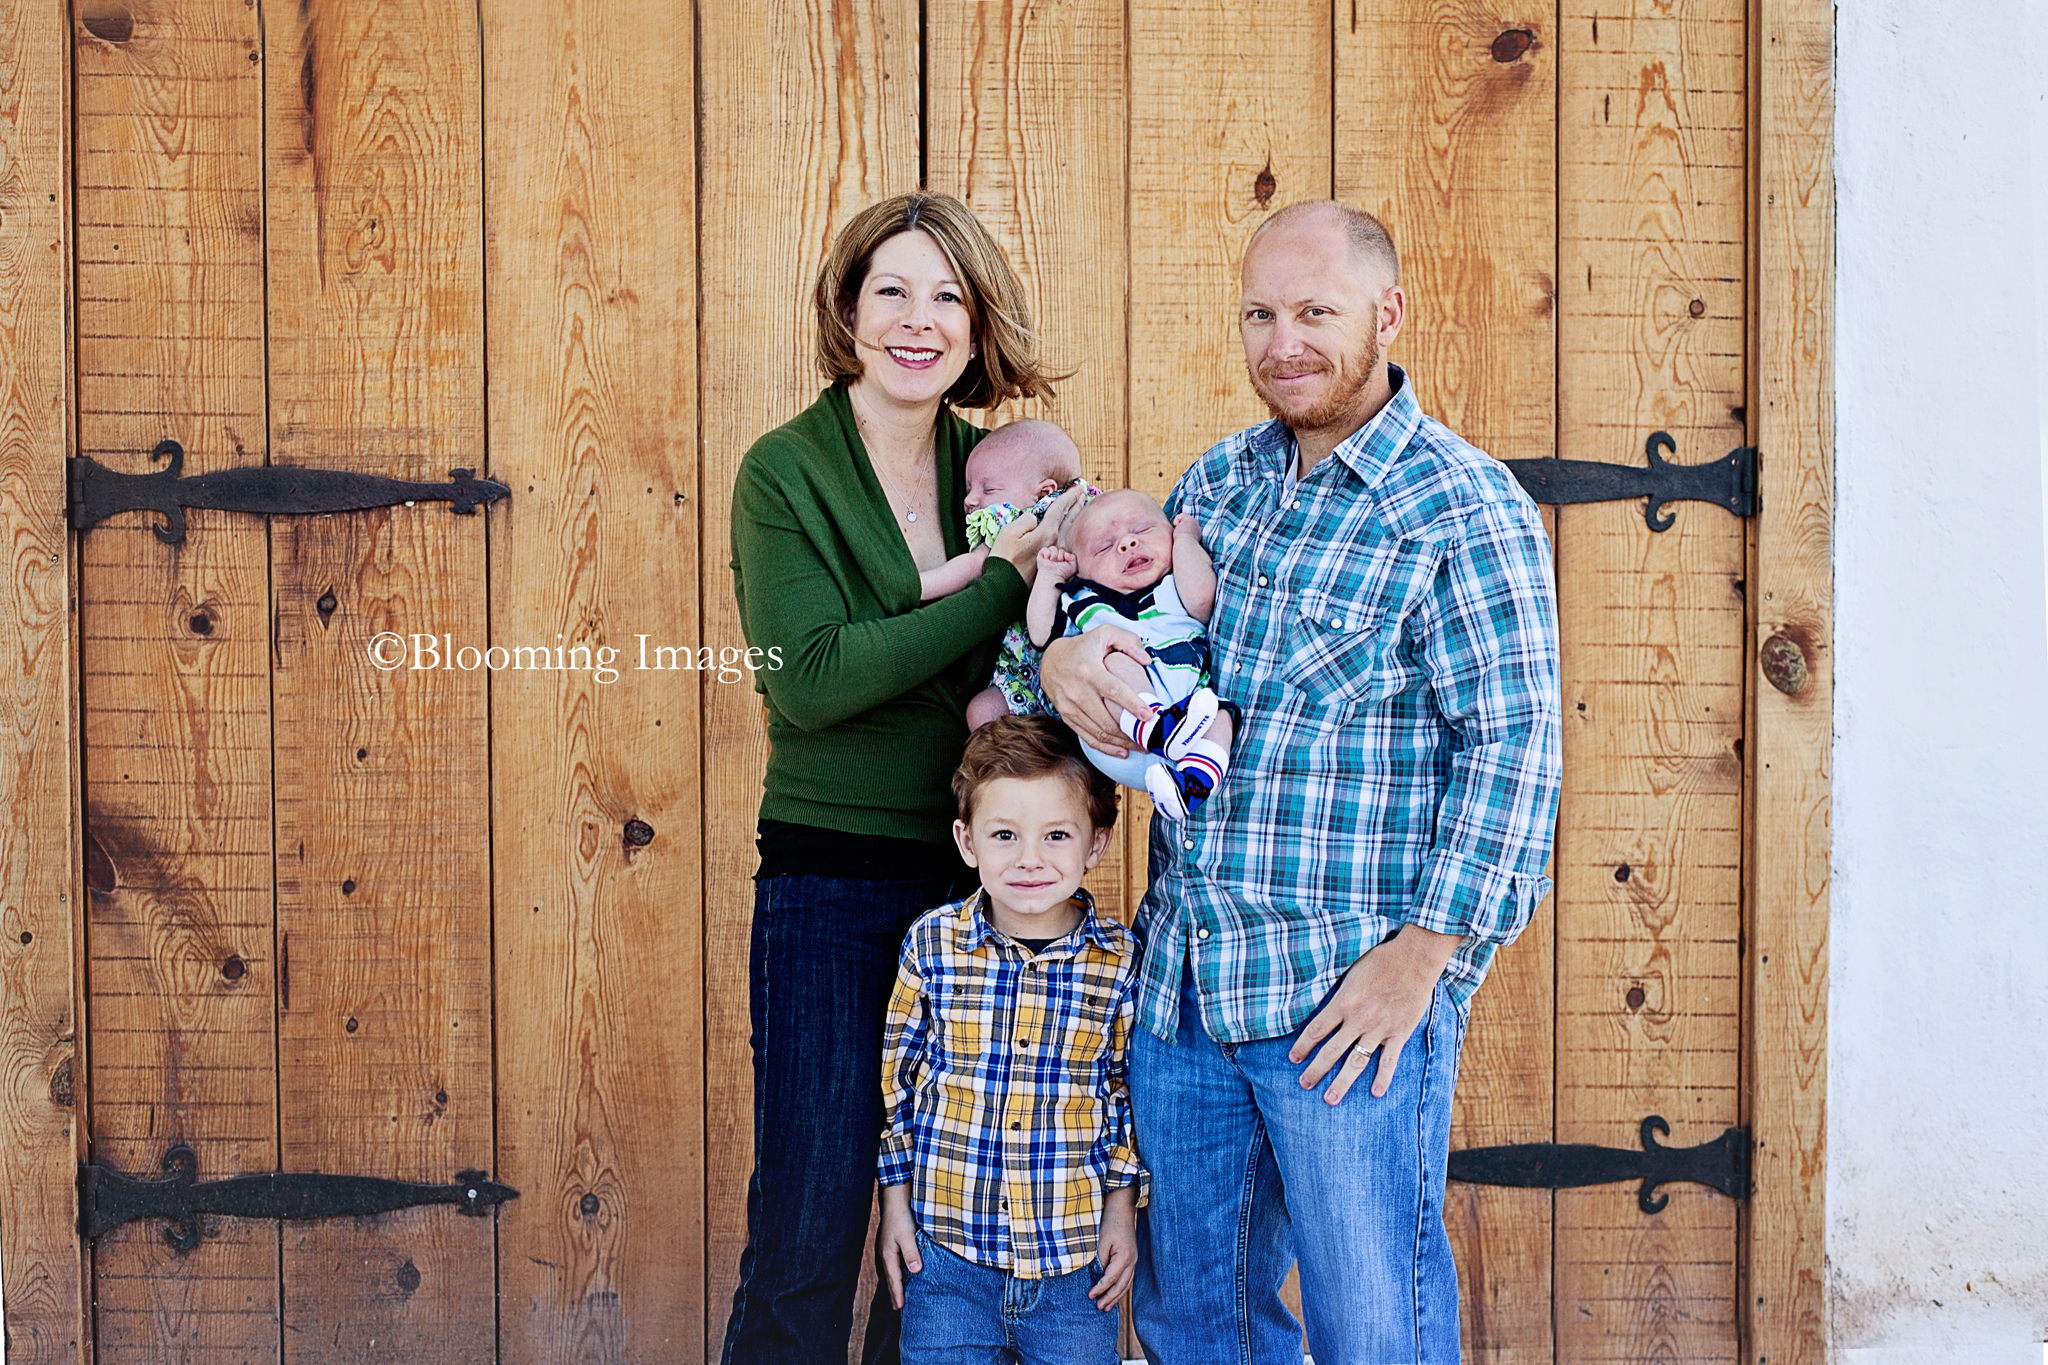 Albuquerque Family Photographers, Family Photographers in Albuquerque, Santa Fe Family Photographers